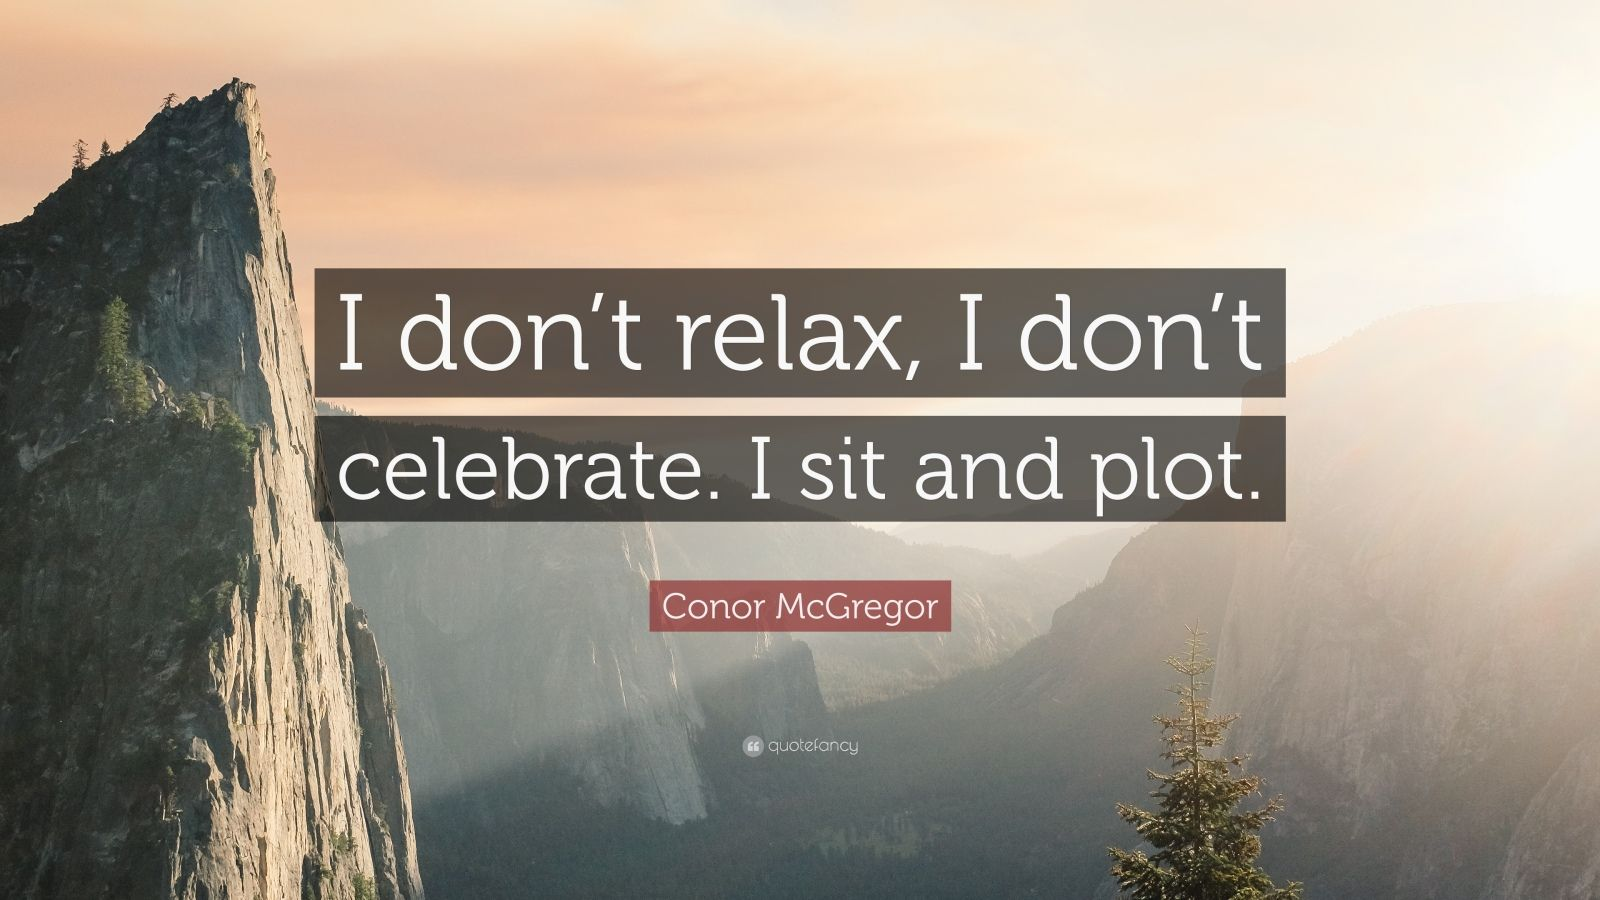 """Conor McGregor Quote: """"I don't relax, I don't celebrate. I sit and plot."""""""